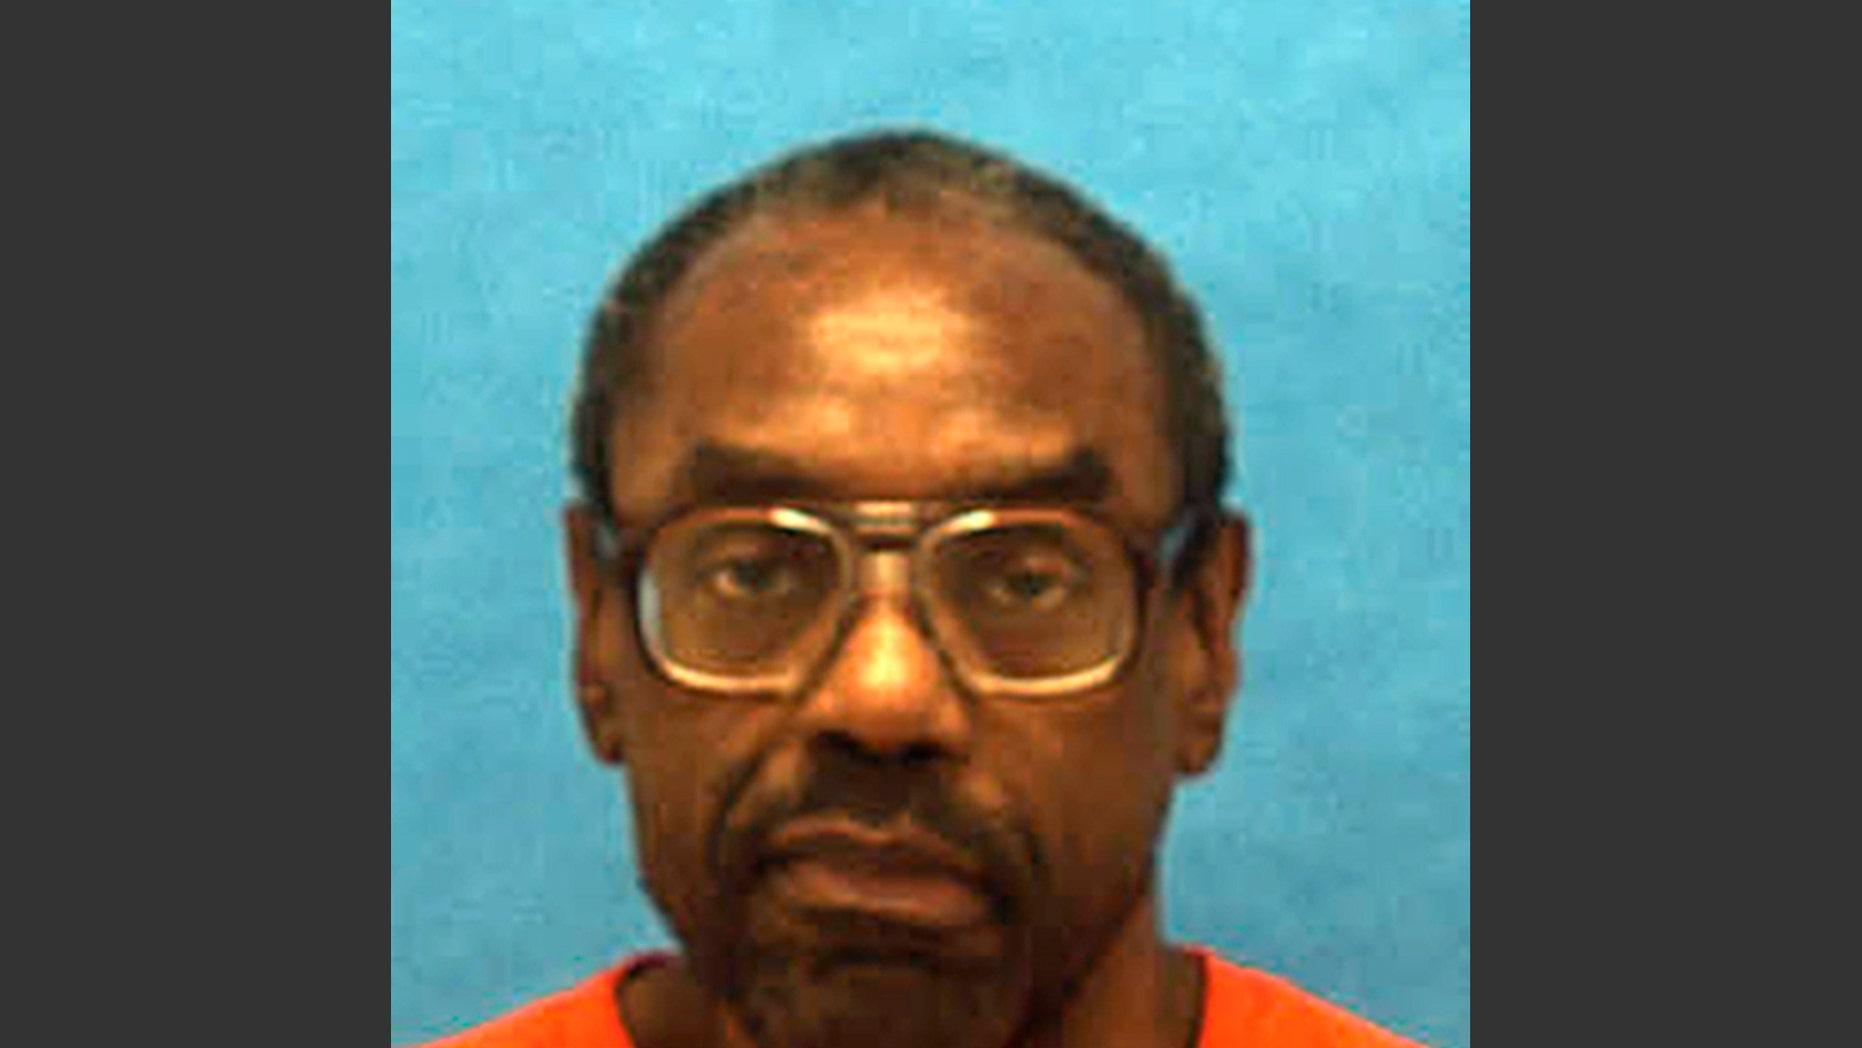 FILE - This undated file photo provided by the Florida Department of Corrections shows inmate Askari Abdullah Muhammad, previously known as Thomas Knight, convicted of abducting and killing a Miami couple and later stabbing a prison guard to death. Muhammad is scheduled to die by lethal injection, Tuesday, Jan. 7, 2014. (AP Photo/Florida Department of Corrections, File)